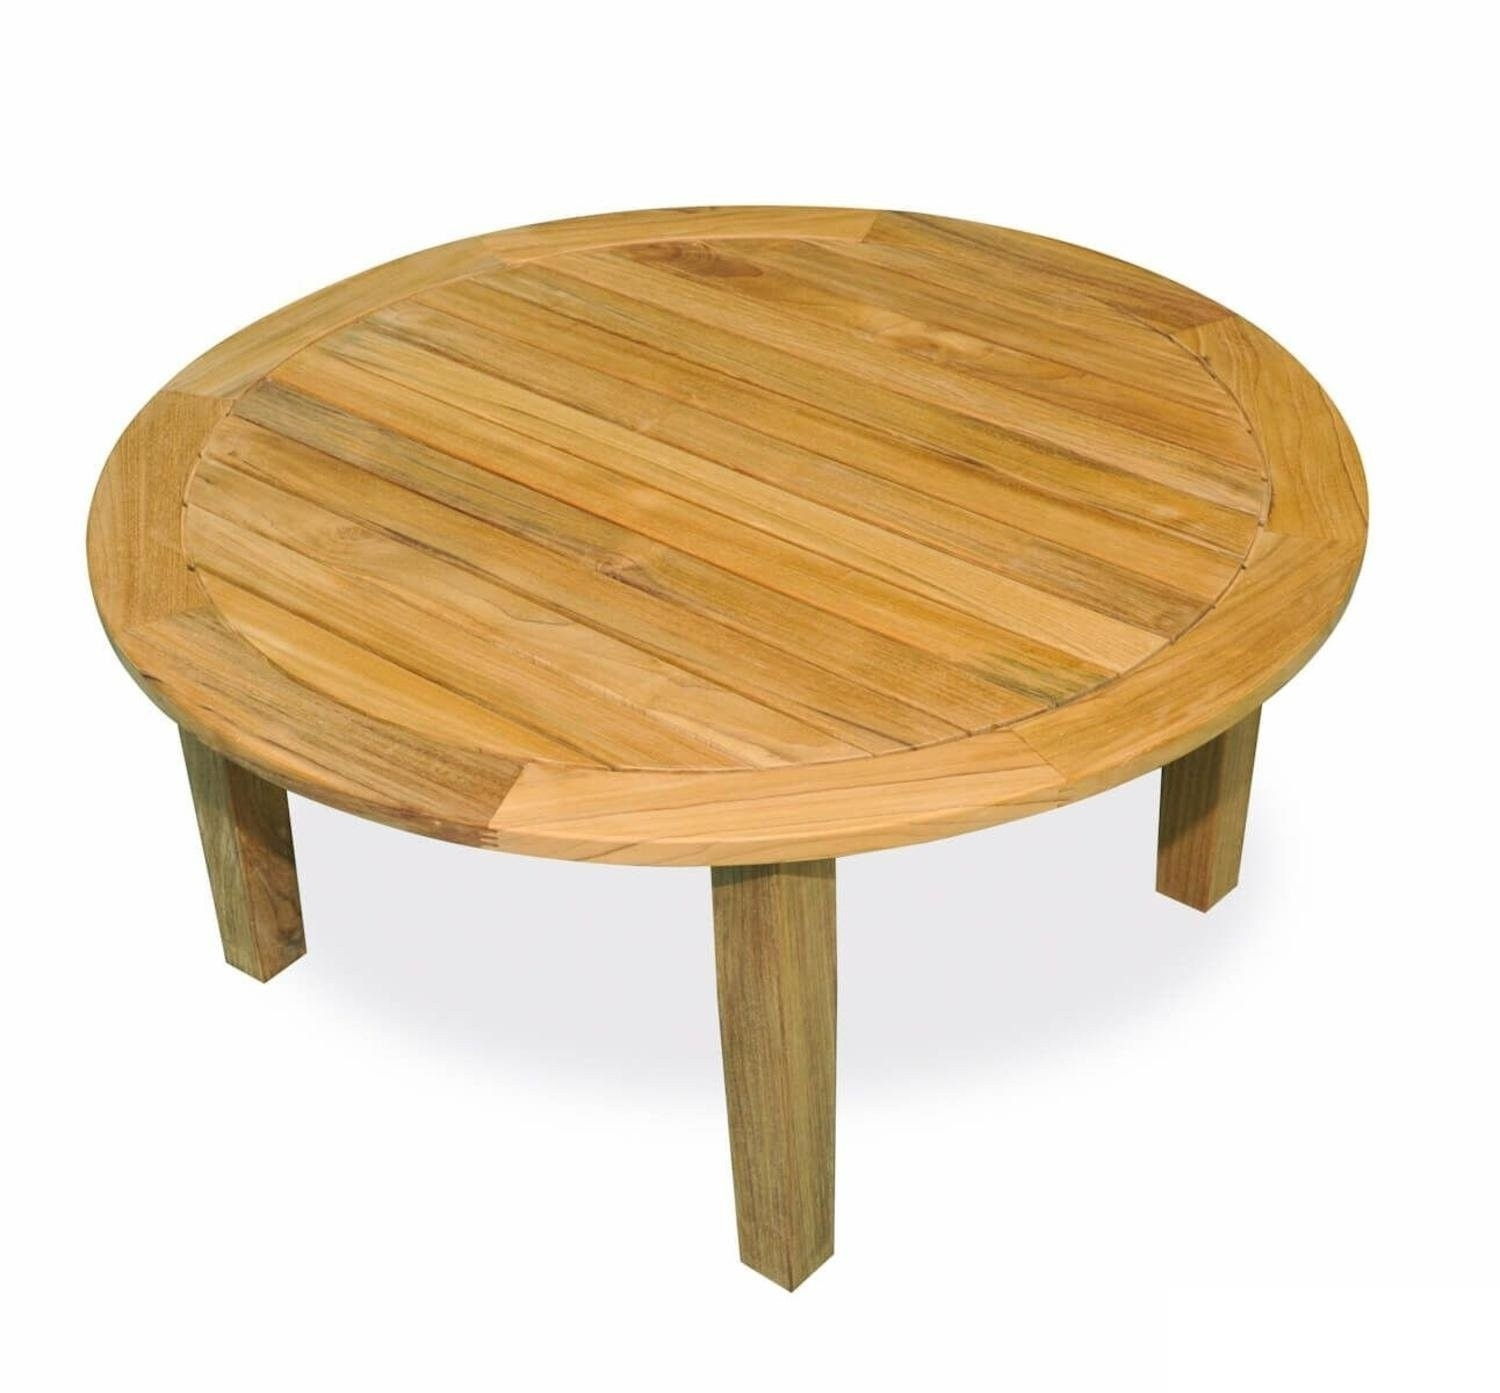 15 Elegant Outdoor Teak Coffee Table with Round Teak Coffee Tables (Image 1 of 30)